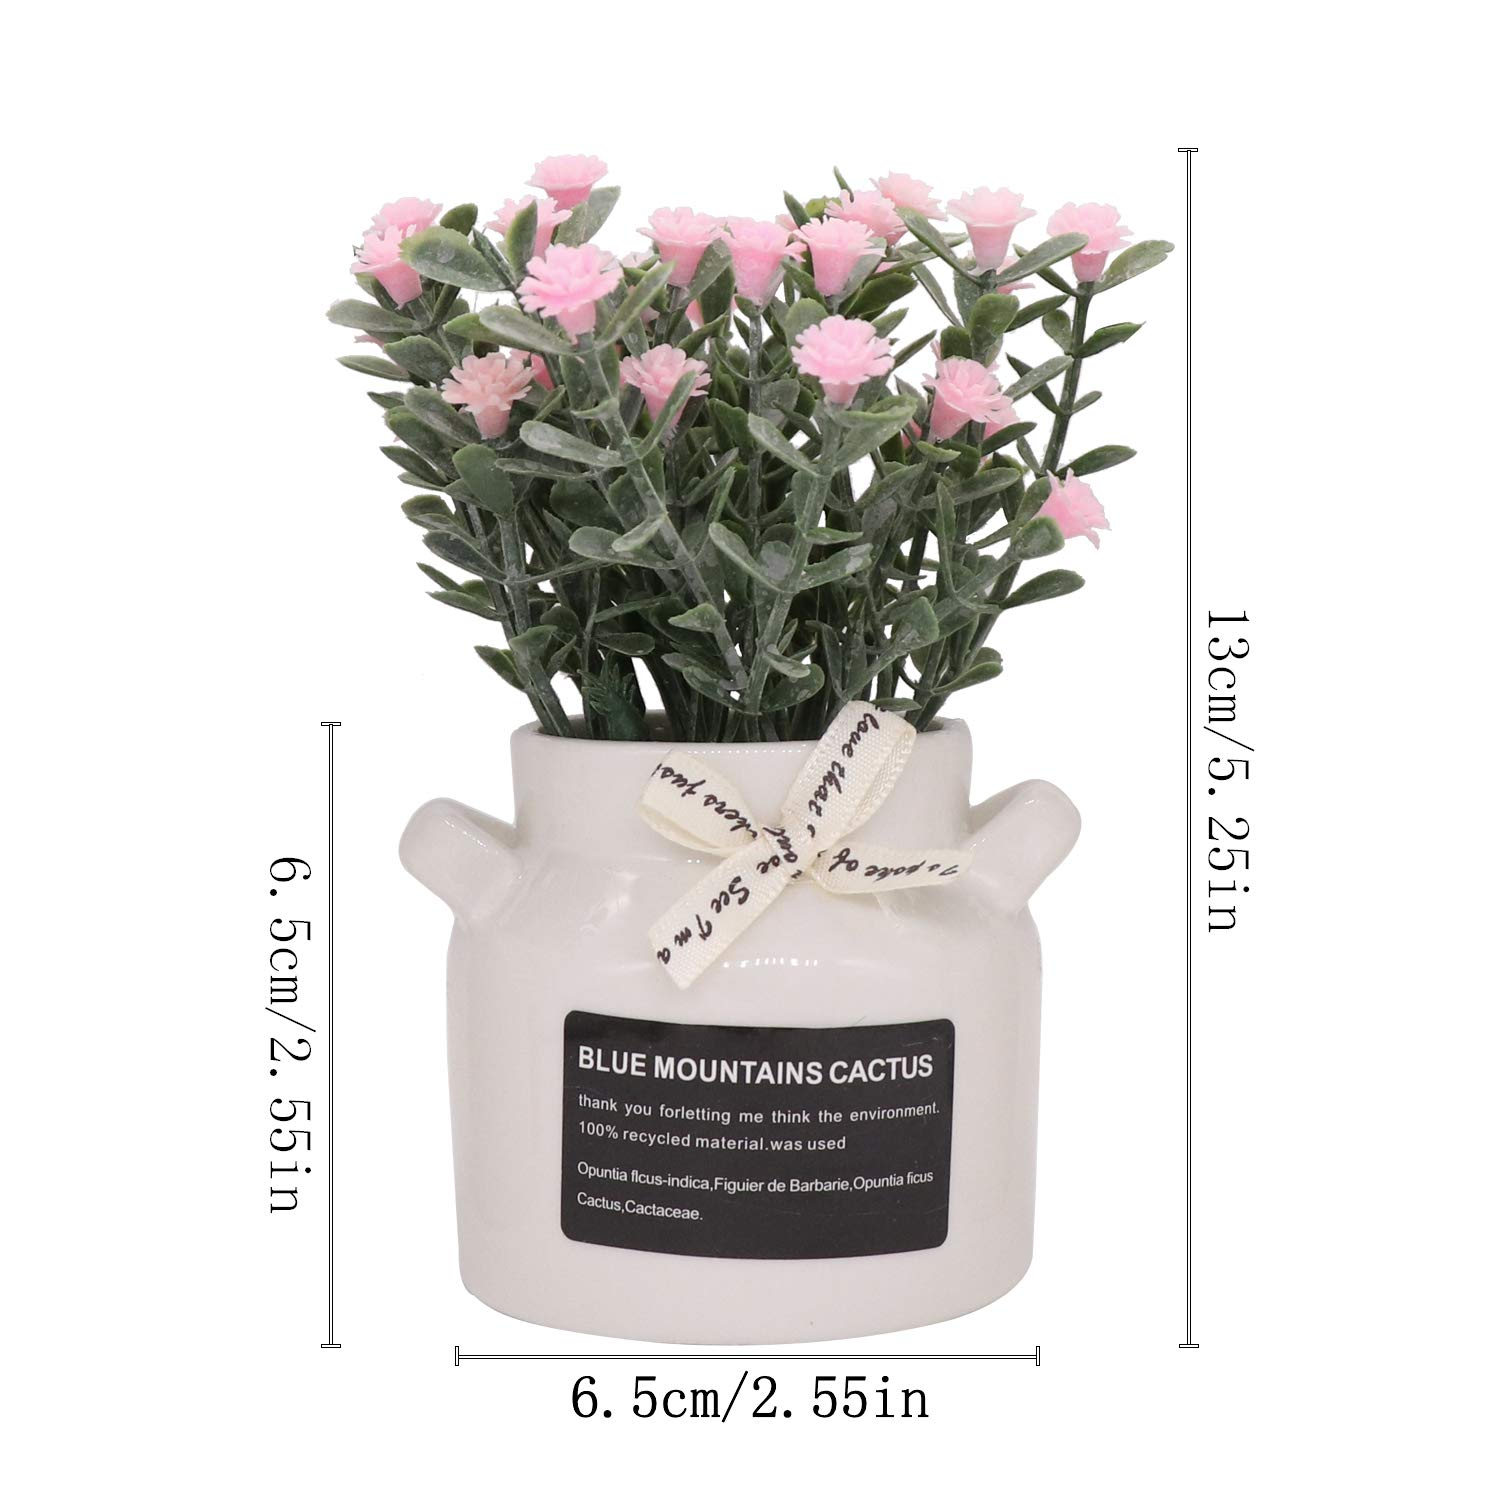 In Vase Small Collection For Bathroom Table House Balcony Office D/écor PANTINUE 3 Pcs Fake Aritificial Plant Flowers Baby Breath Potted